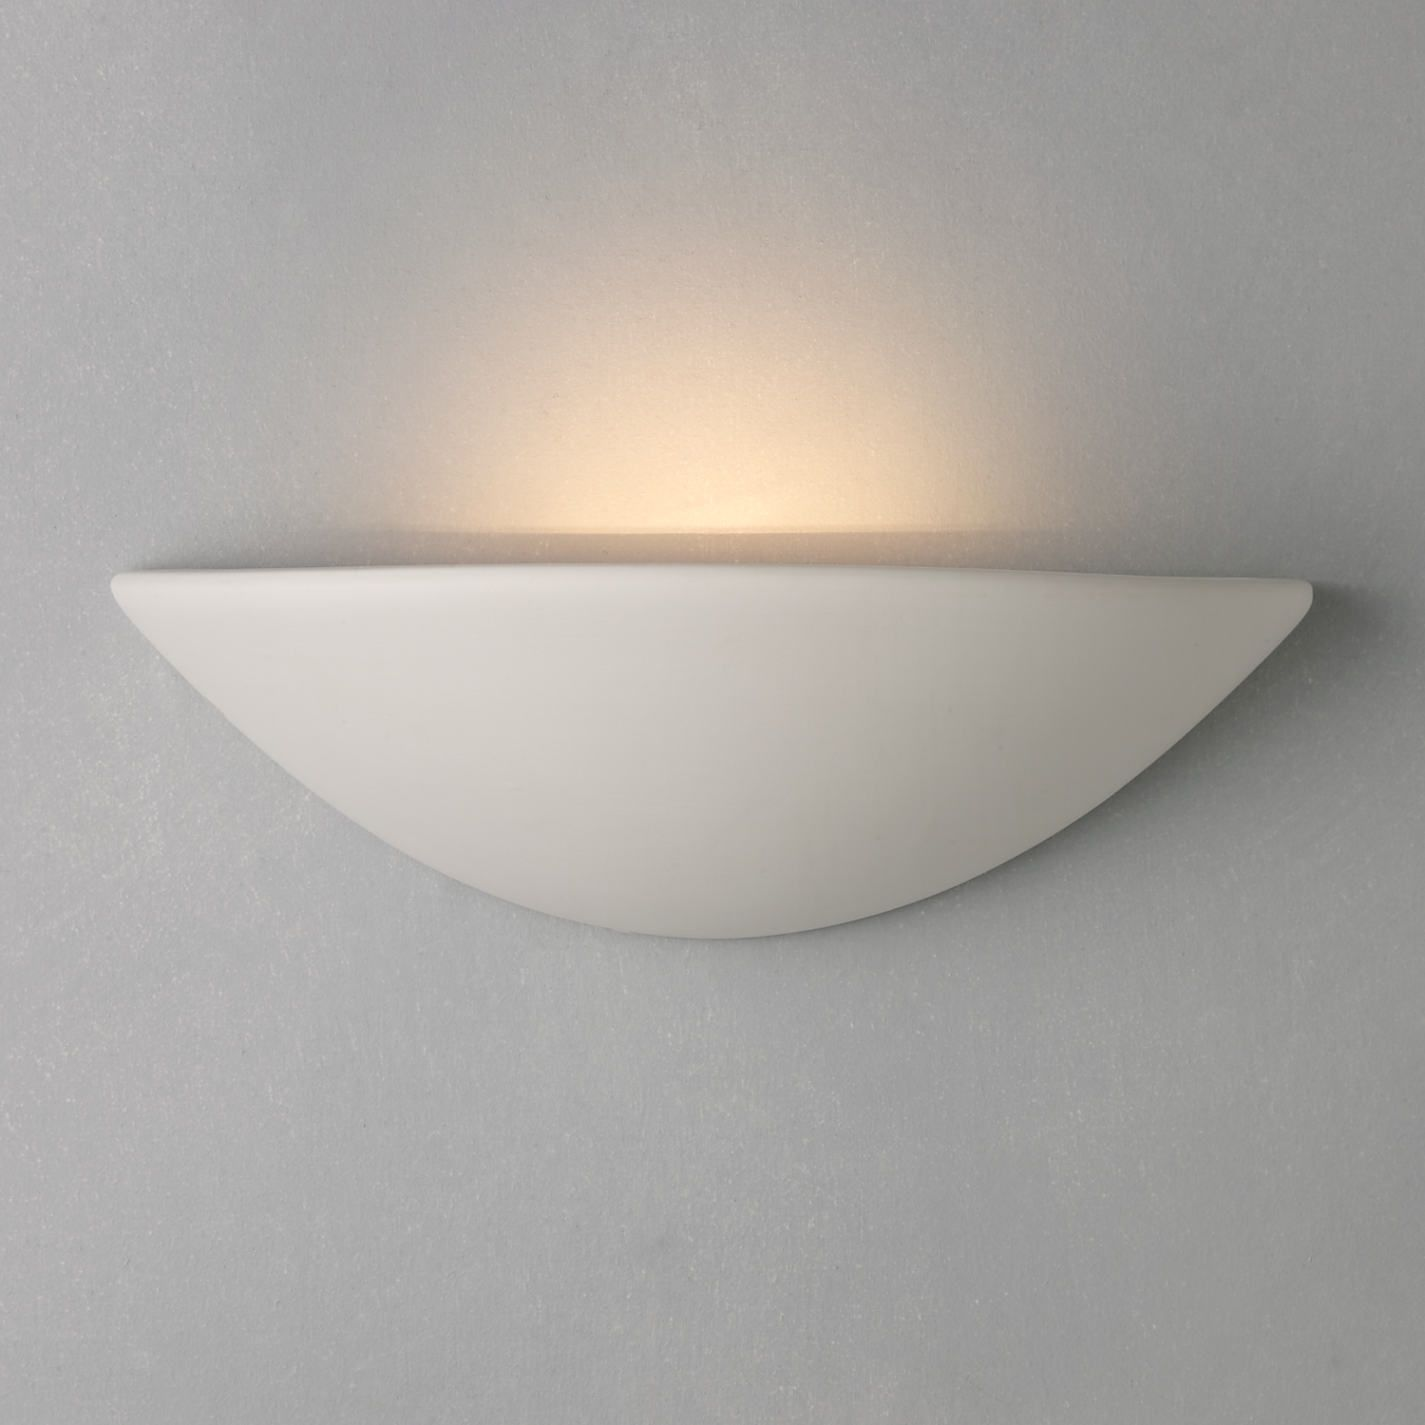 Image result for wall lights pantheon ideas pinterest attic image result for wall lights mozeypictures Choice Image